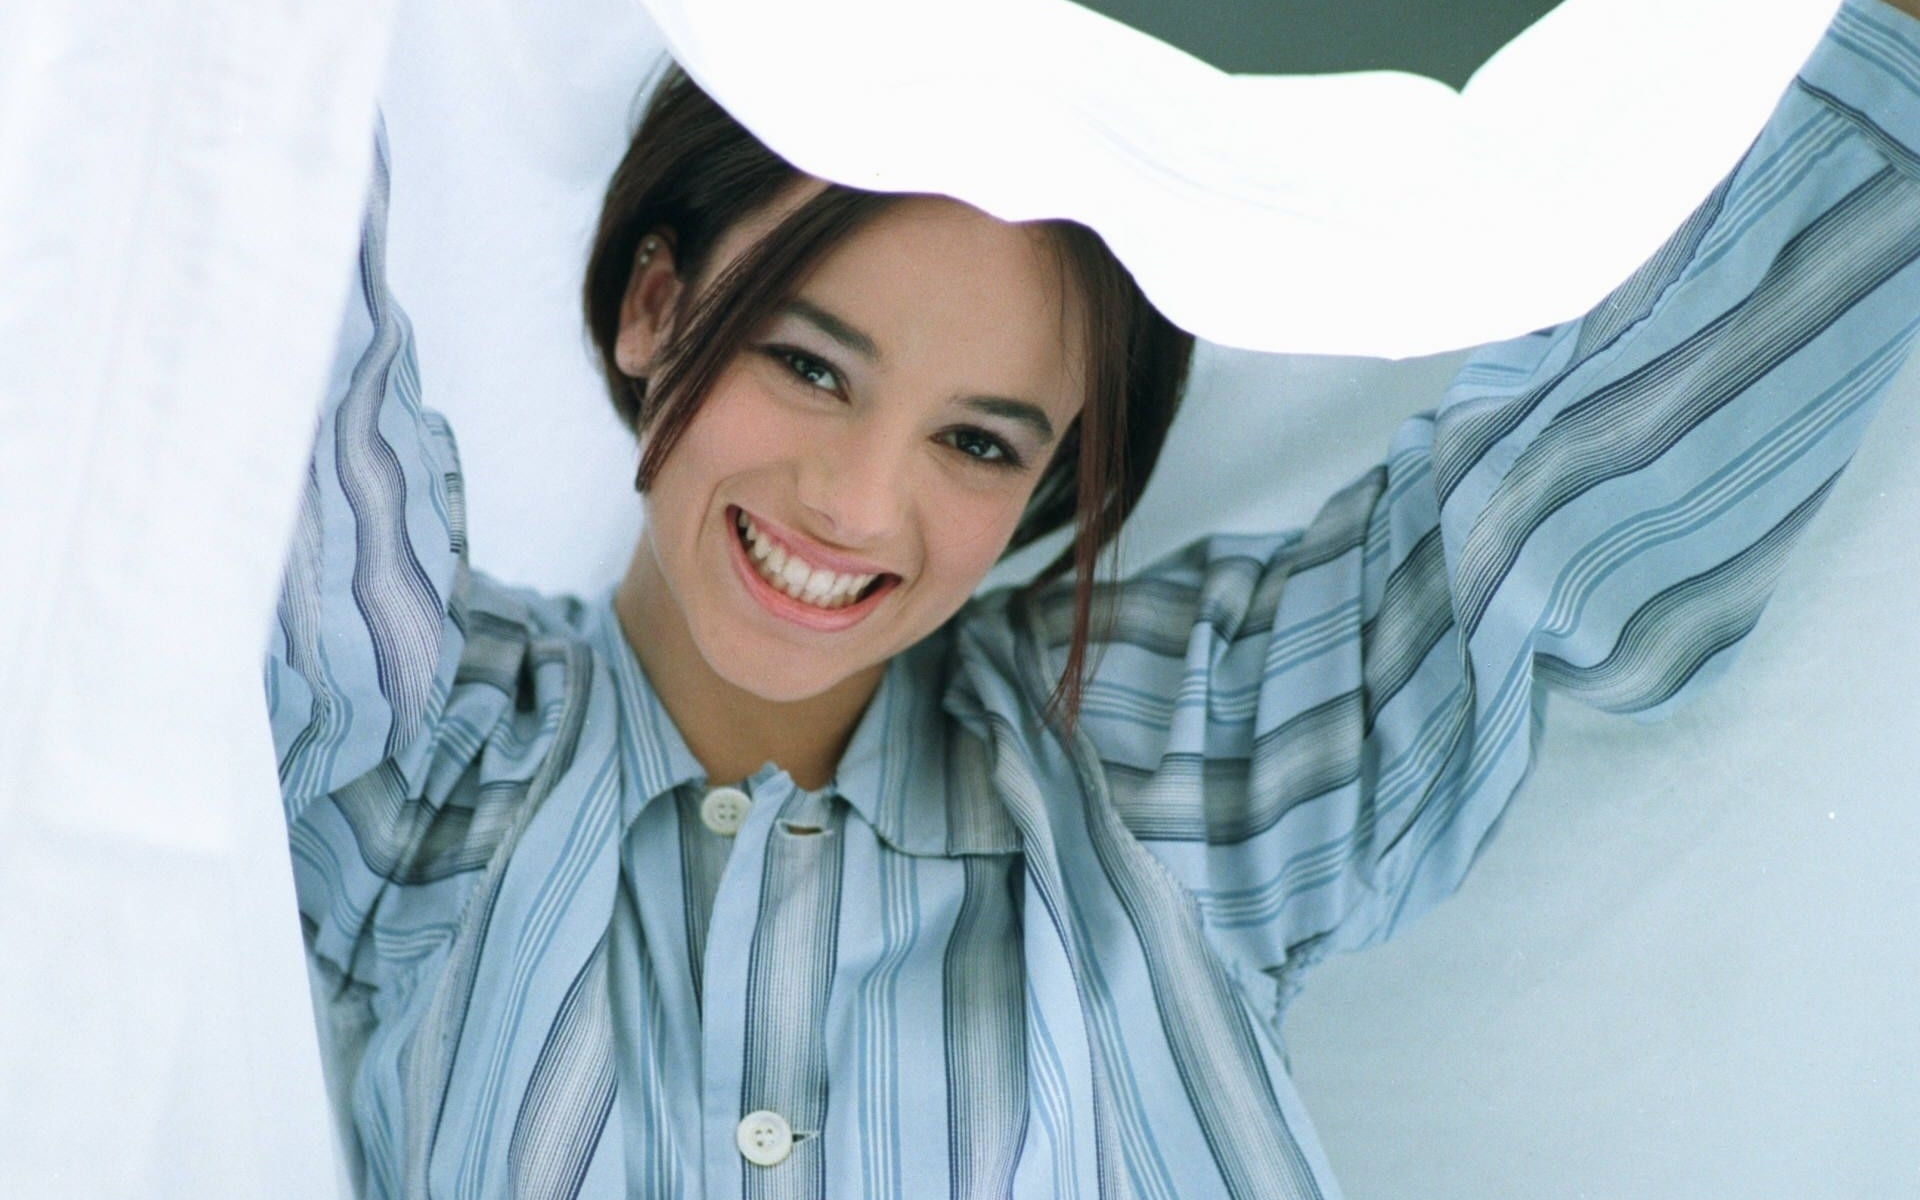 brunettes woman Alizée singers HD Wallpaper